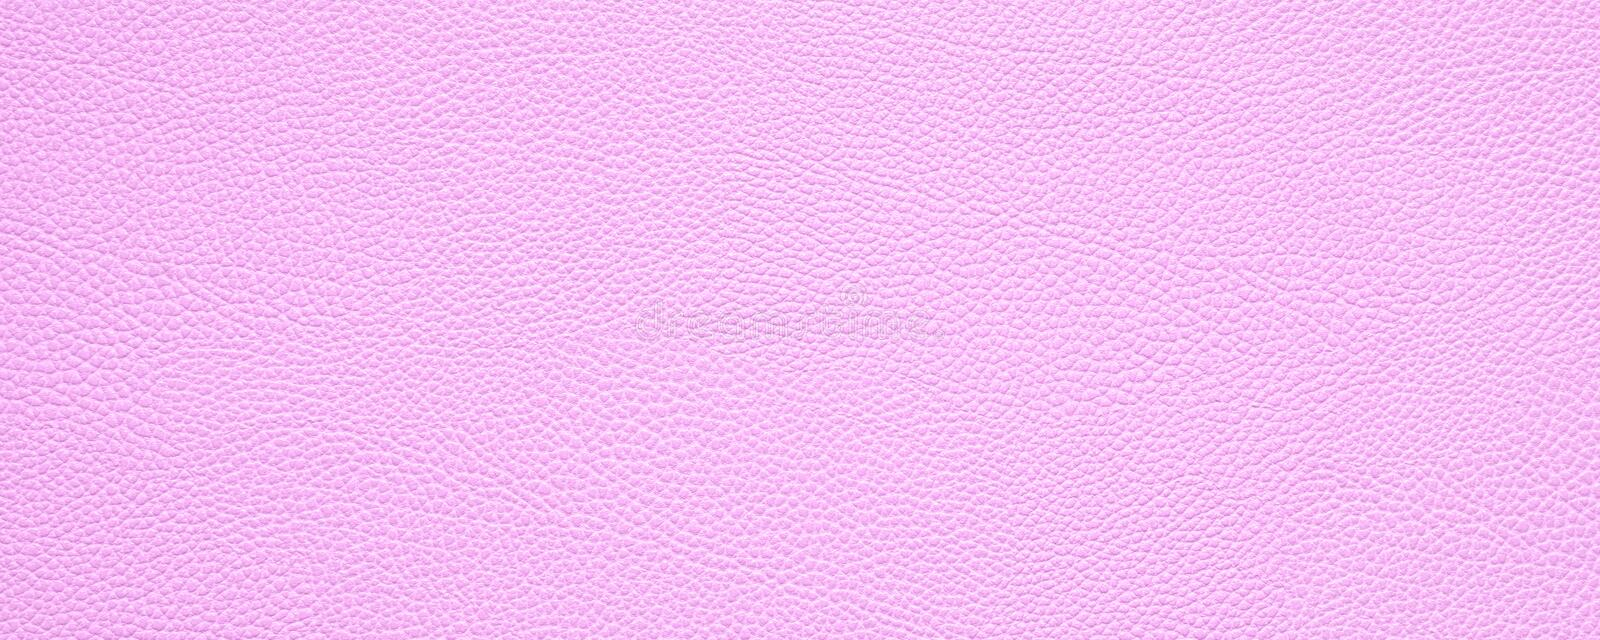 Blank pink leather texture background banner with copy space. Blank pink leather texture background banner or header with copy space vector illustration